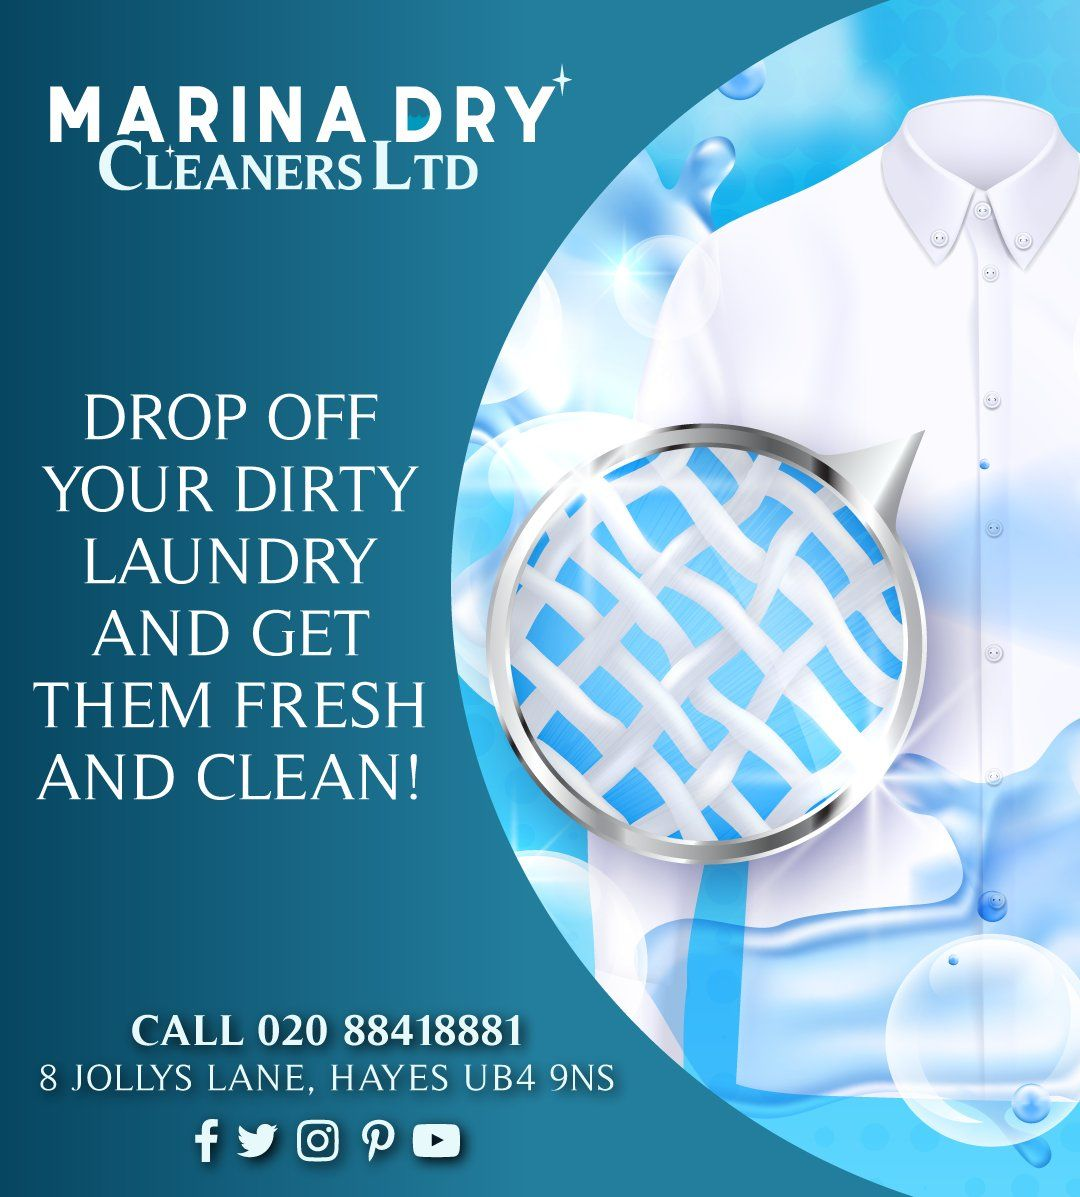 Pin On Marina Dry Cleaners Flyers